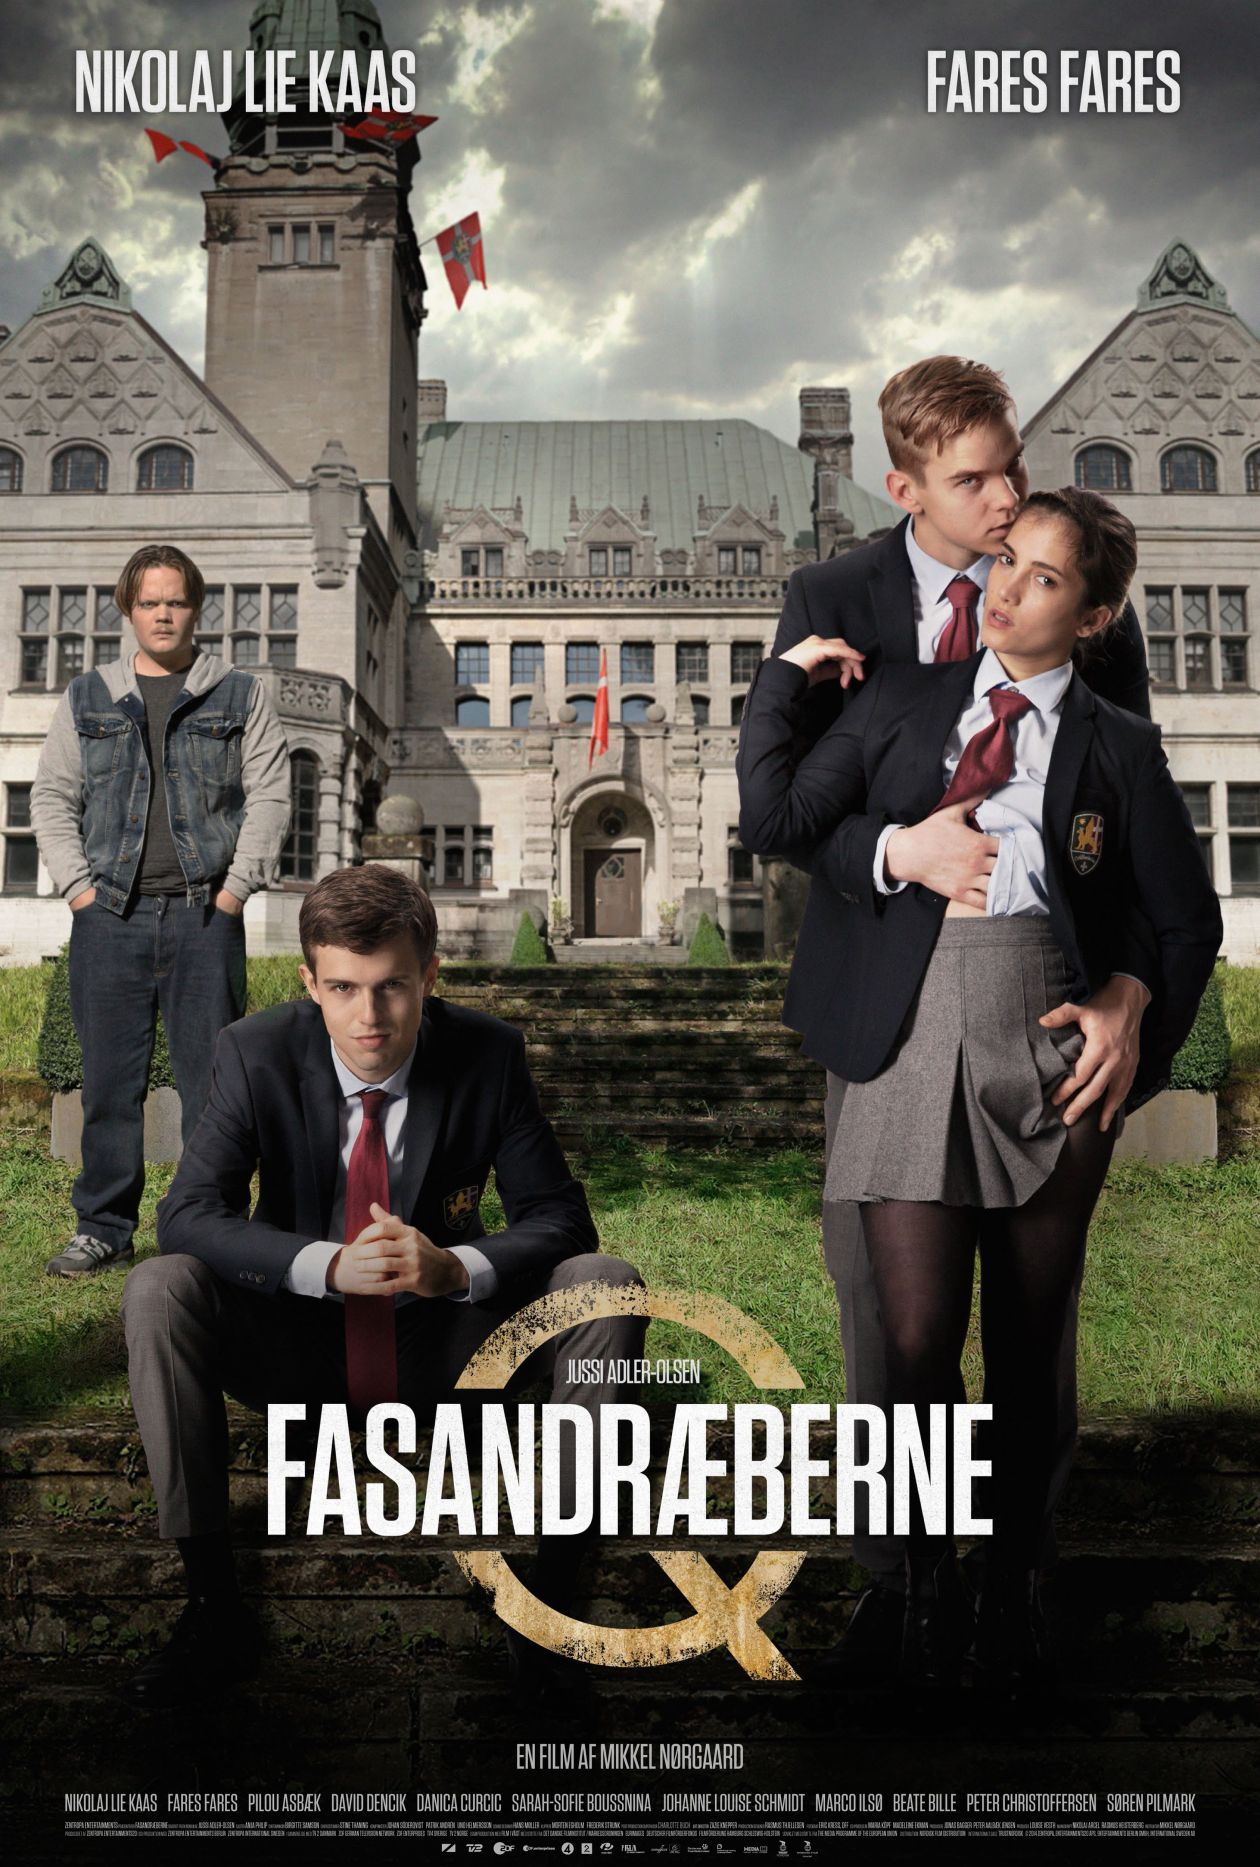 Fasandræberne / Department Q: The Absent One | Mikkel Nørgaard 2014   Sarah-Sofie Boussnina actress / young Kimmie